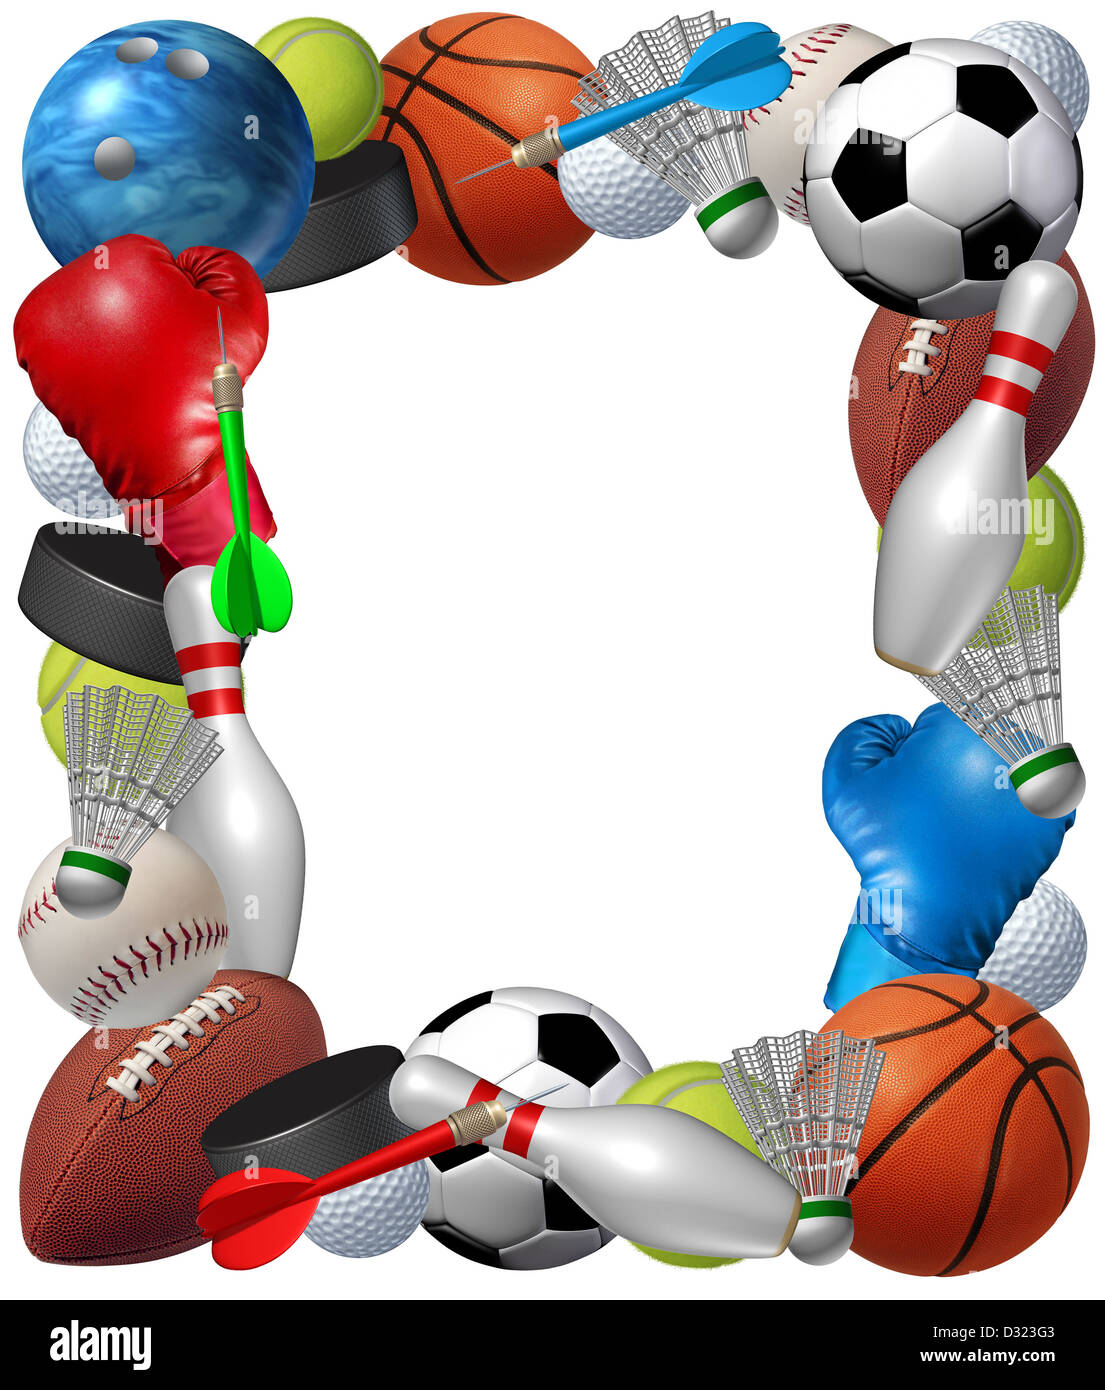 c0dca986351c Sports frame with sport equipment from baketball boxing golf bowling tennis  badminton football soccer darts ice hockey and baseball as a fitness and  health ...